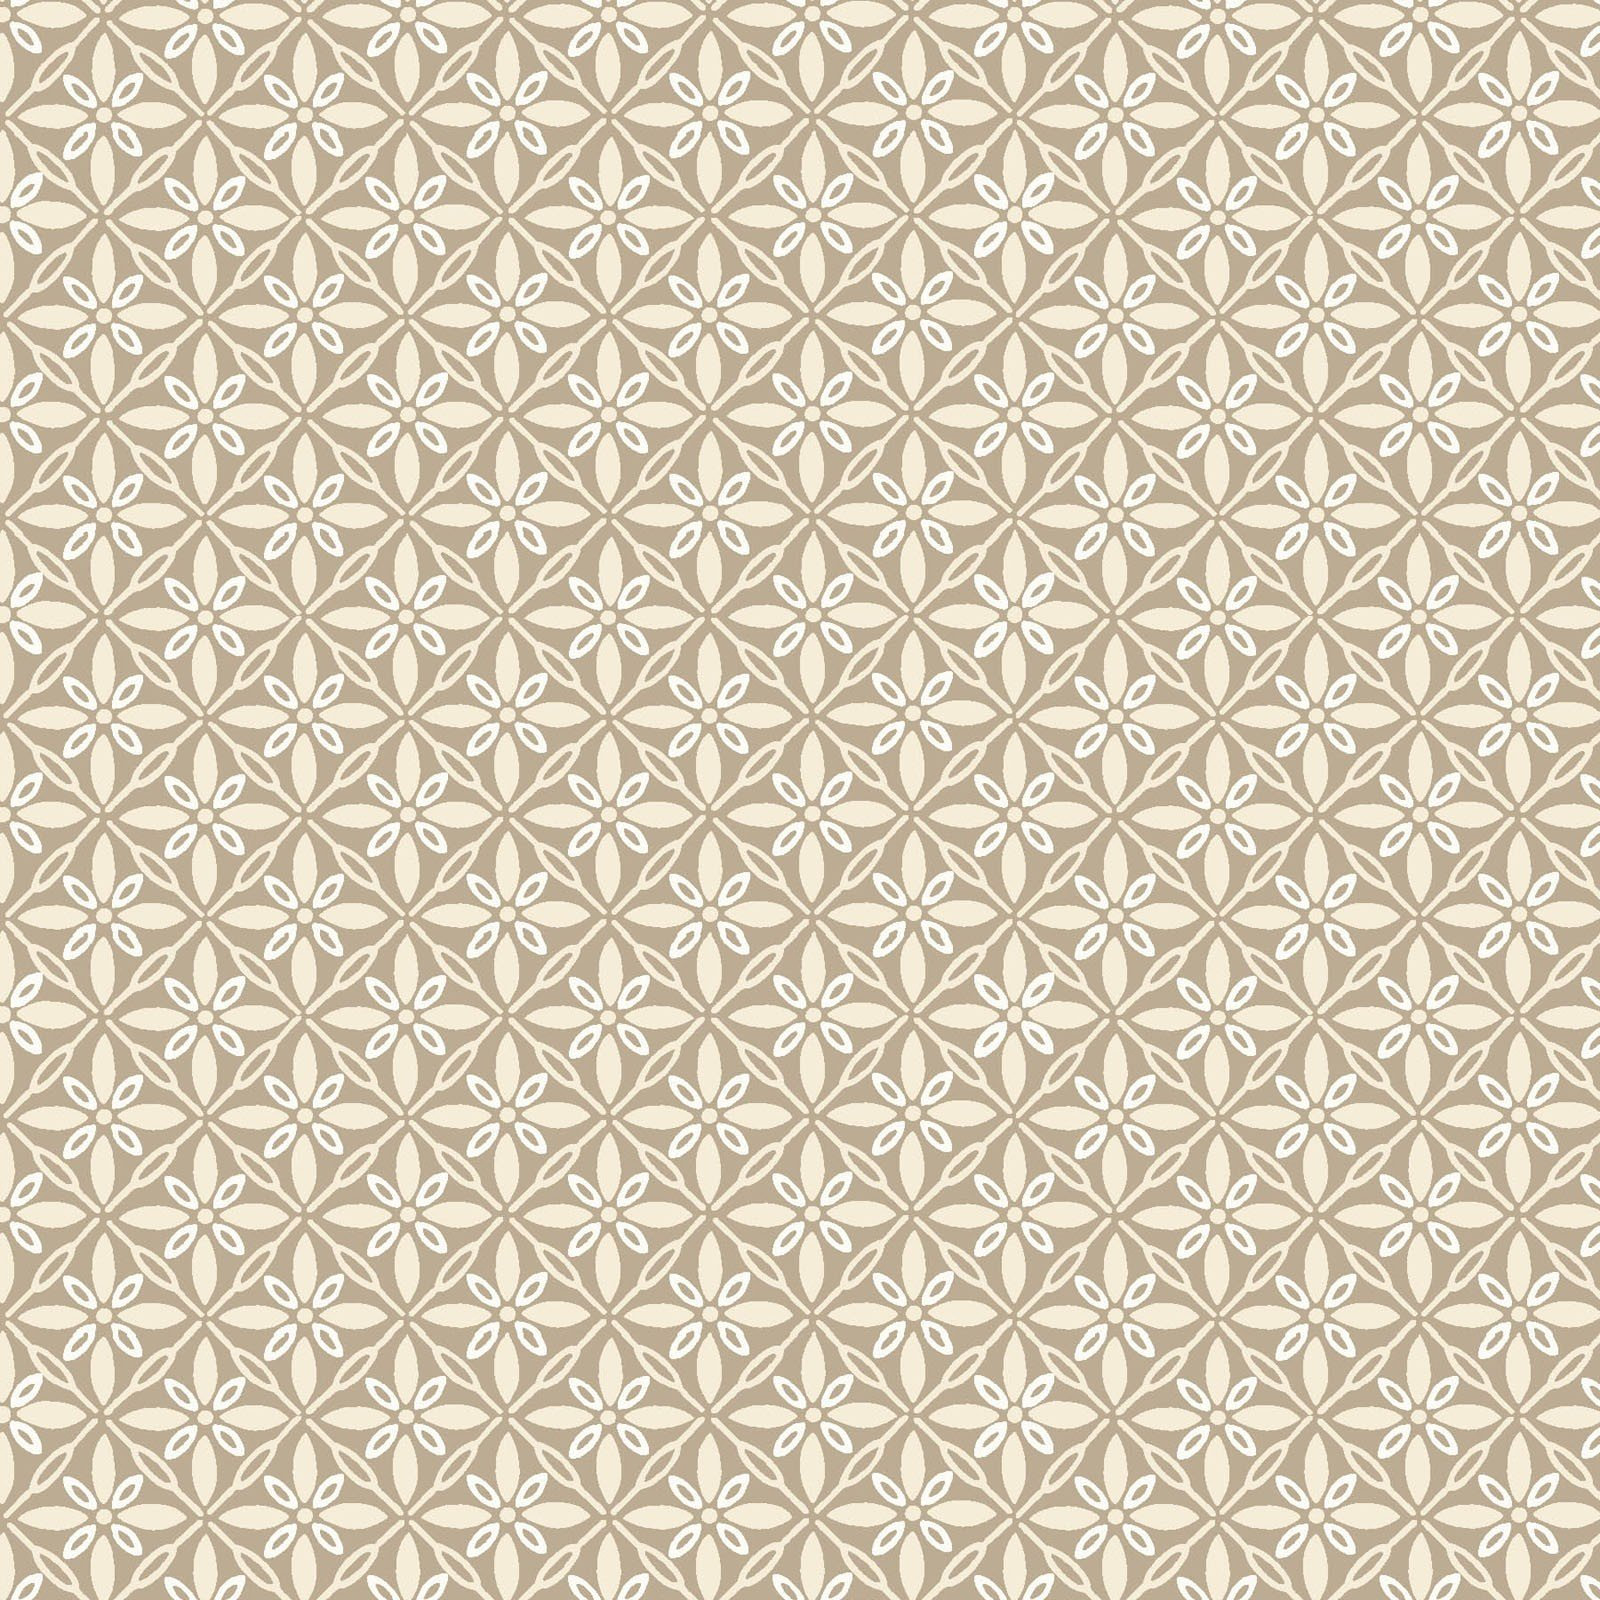 Taupe Tufted Star - Make Yourself at Home - Kim Christopherson - MAS9396-T